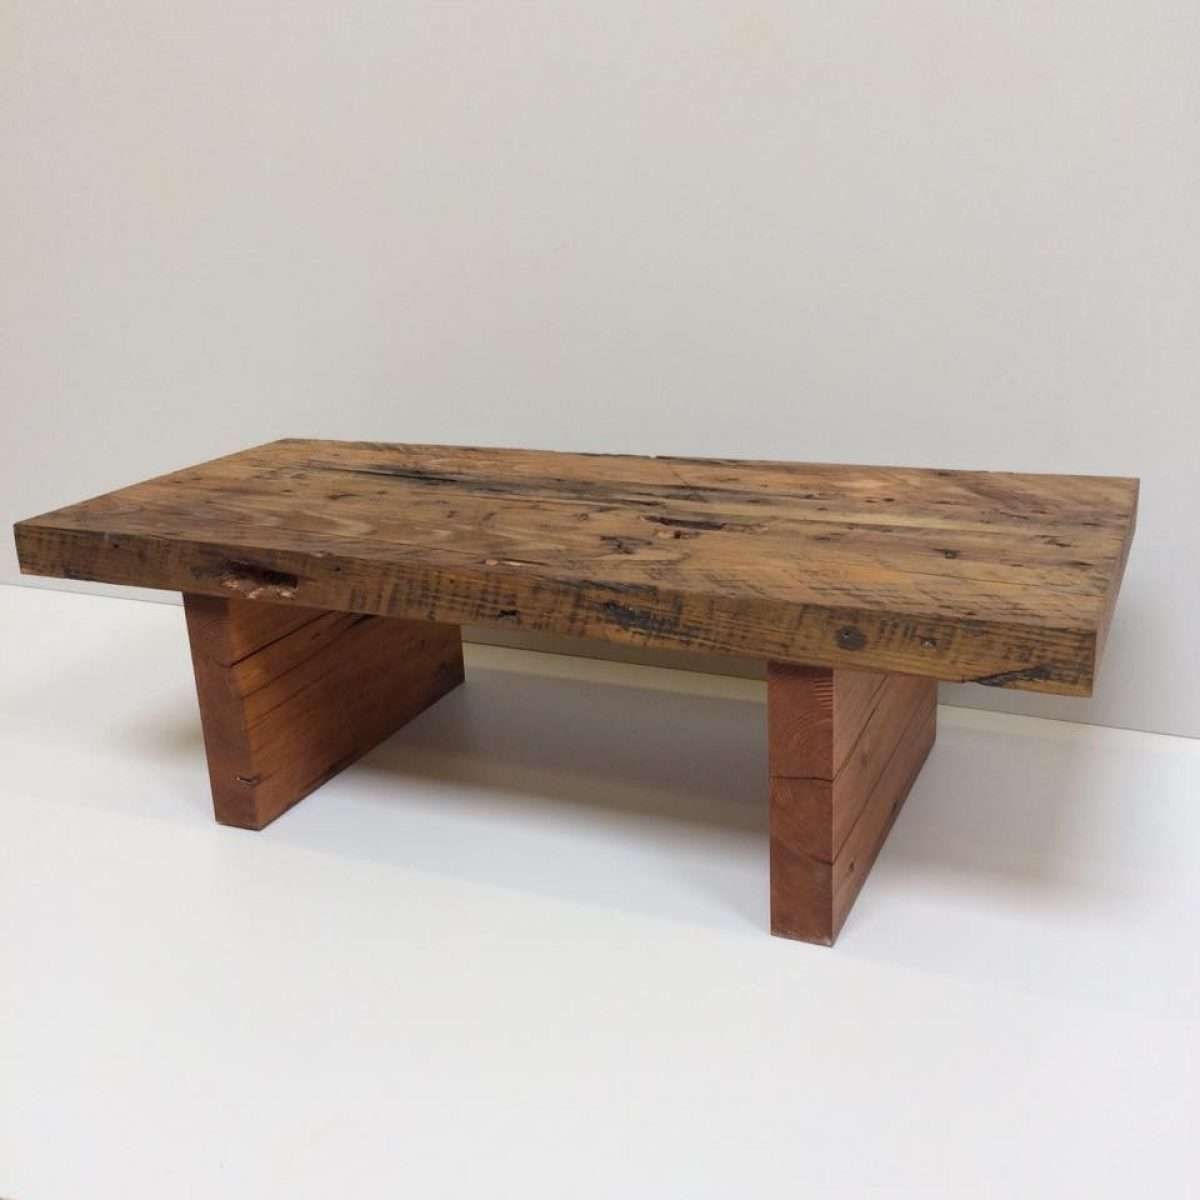 Most Popular Old Pine Coffee Tables Pertaining To Coffee Table Reclaimed Pine Coffee Table Tables Coleman Edwards (View 12 of 20)